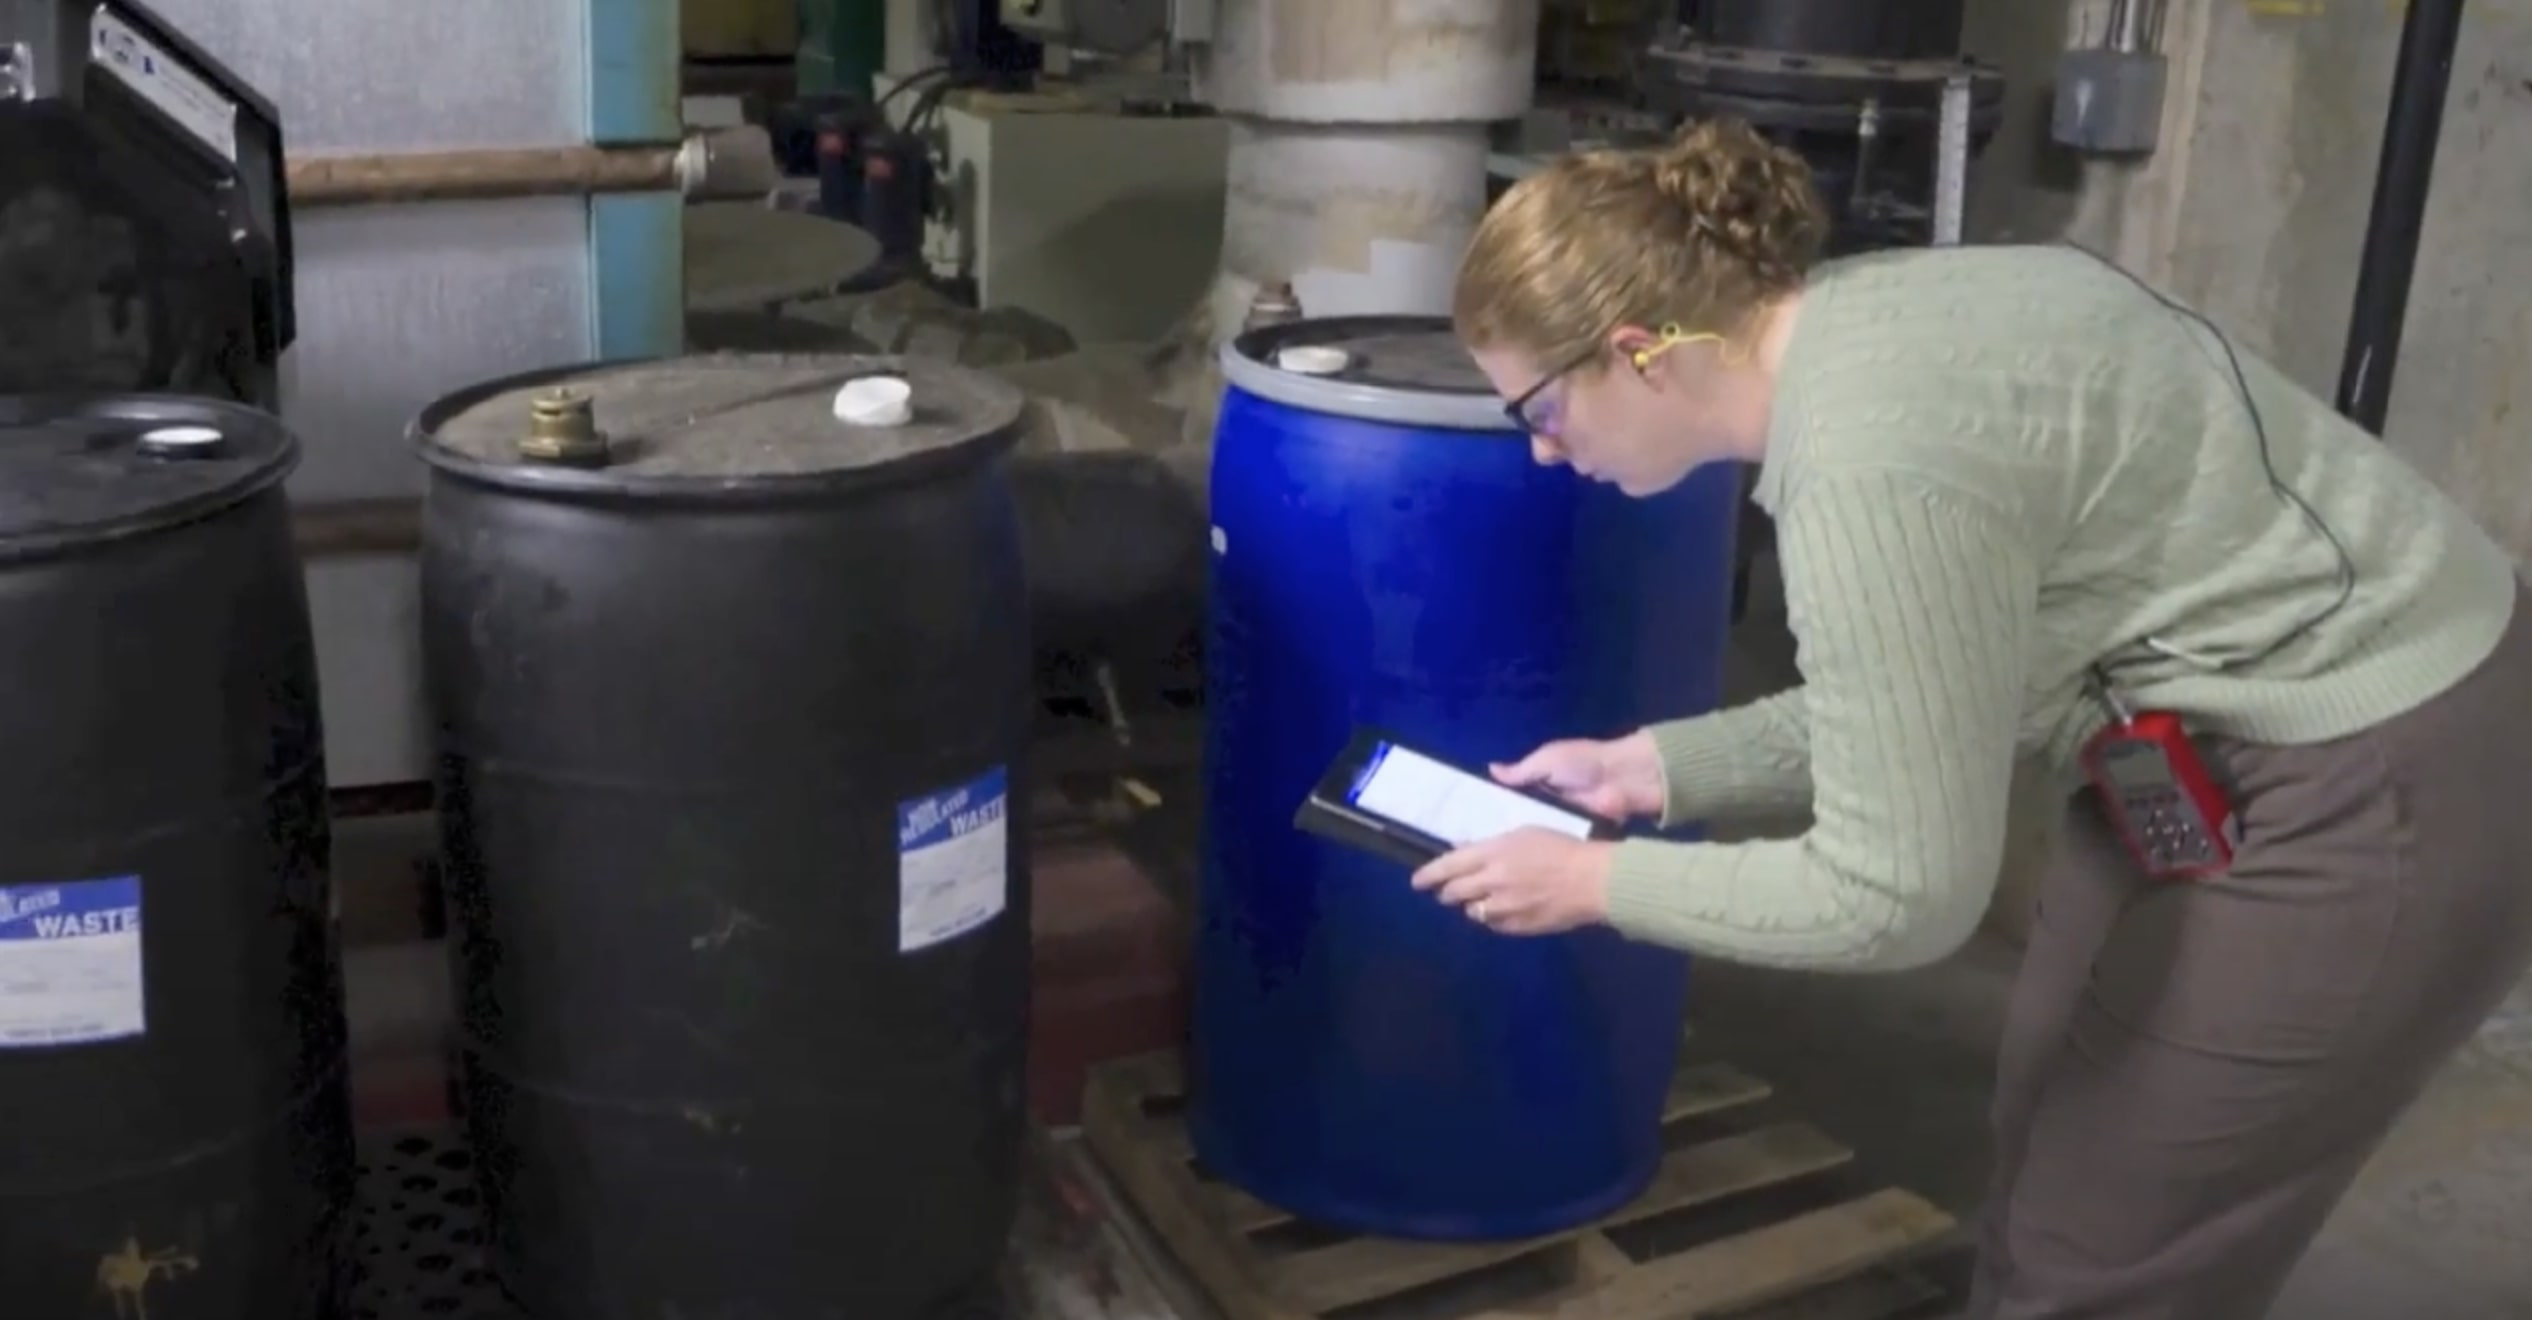 Chemical waste audit at Emory